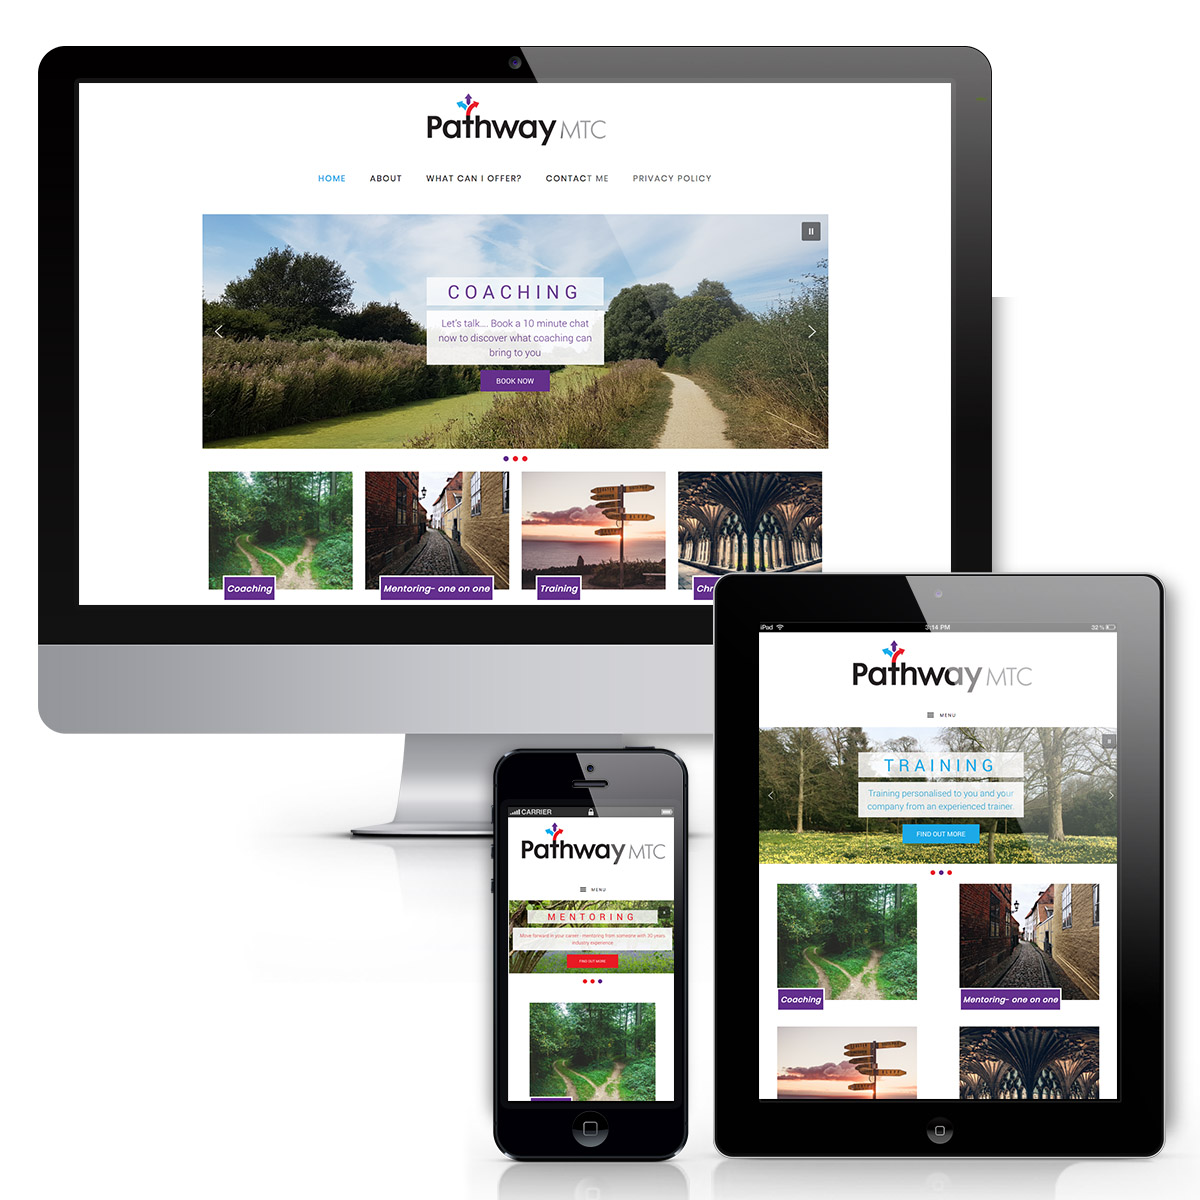 Pathway MTC responsive Website design